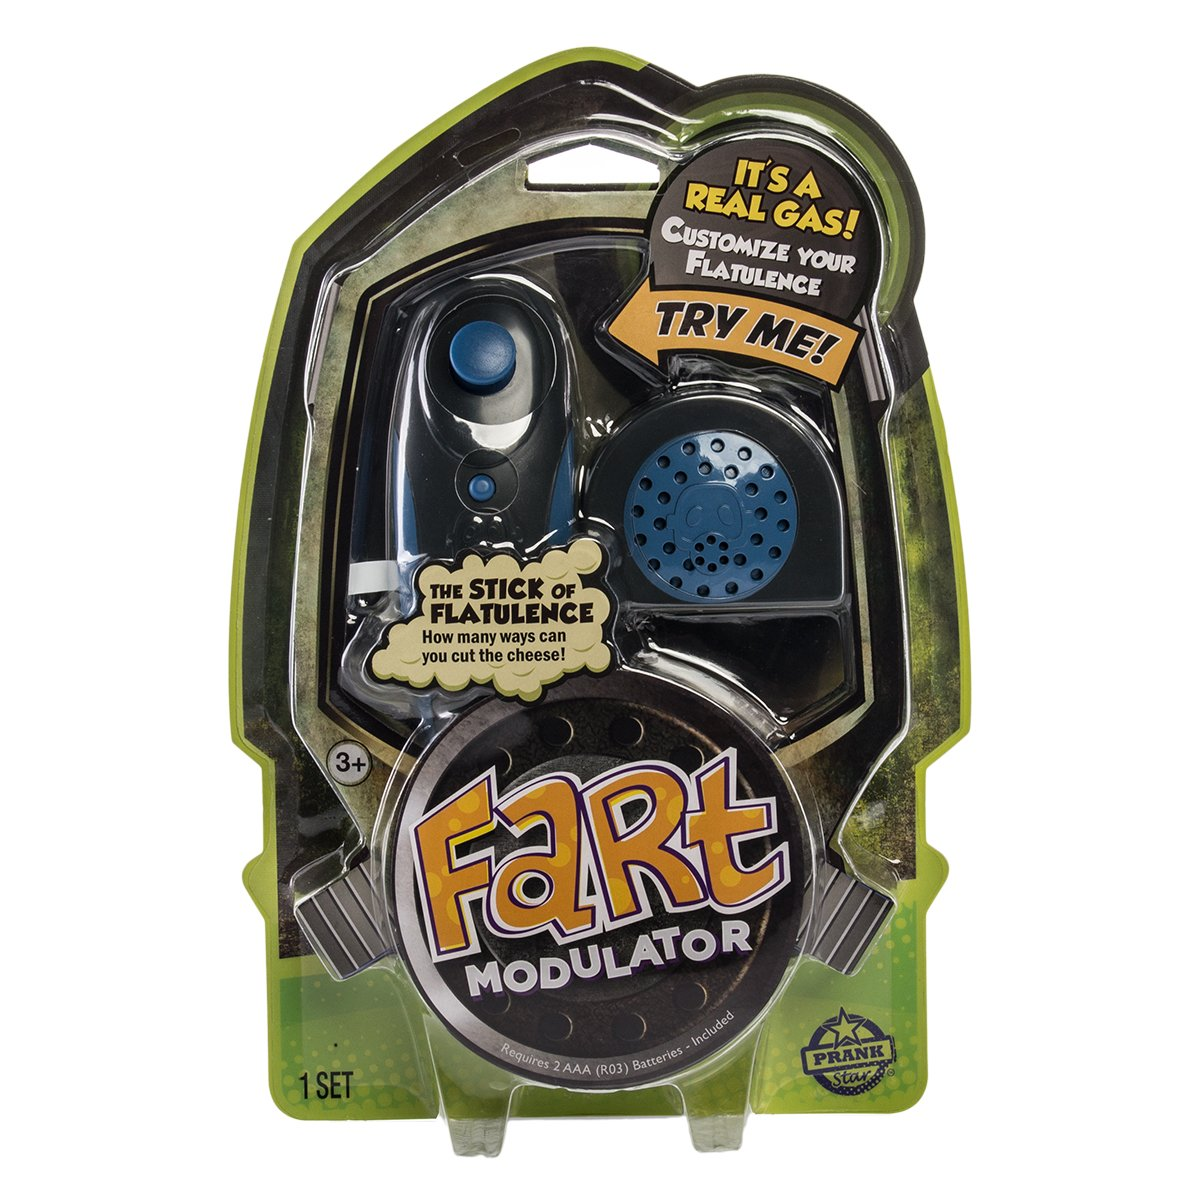 Amazon.com: Prank Star Fart modulador, 1 Set: Toys & Games